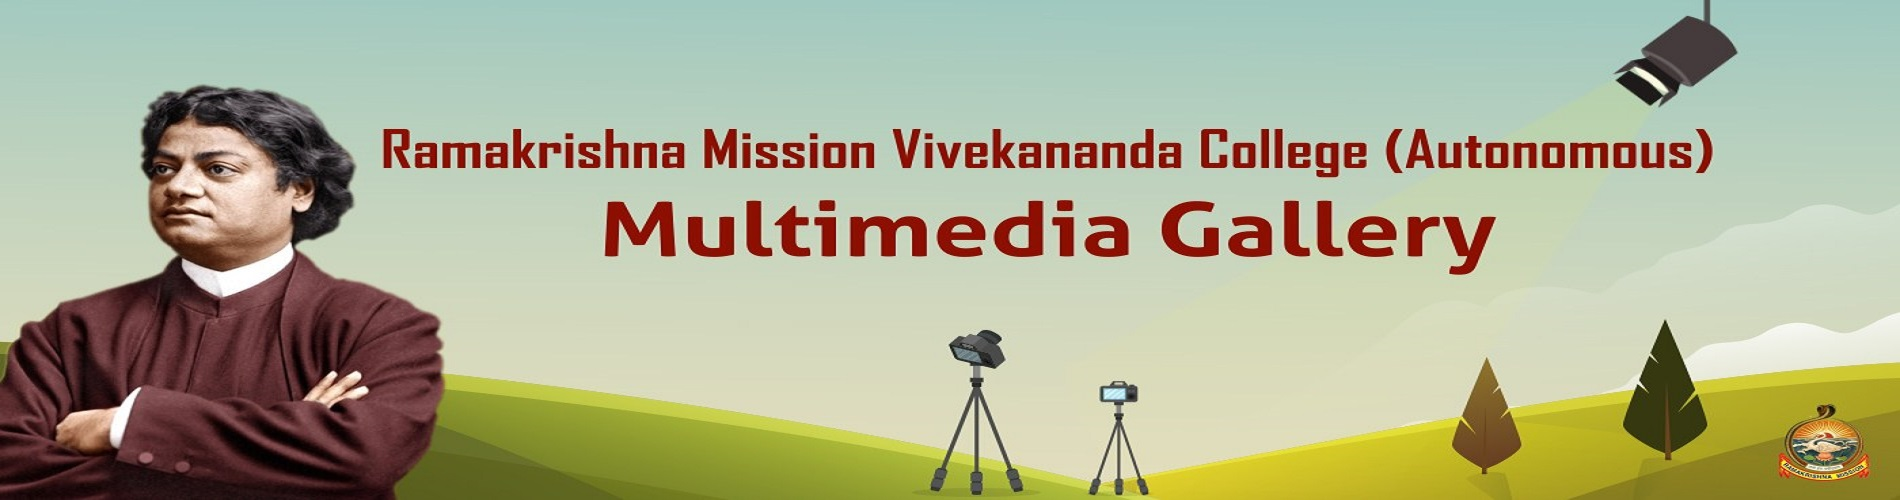 Ramakrishna Mission Vivekananda College Media